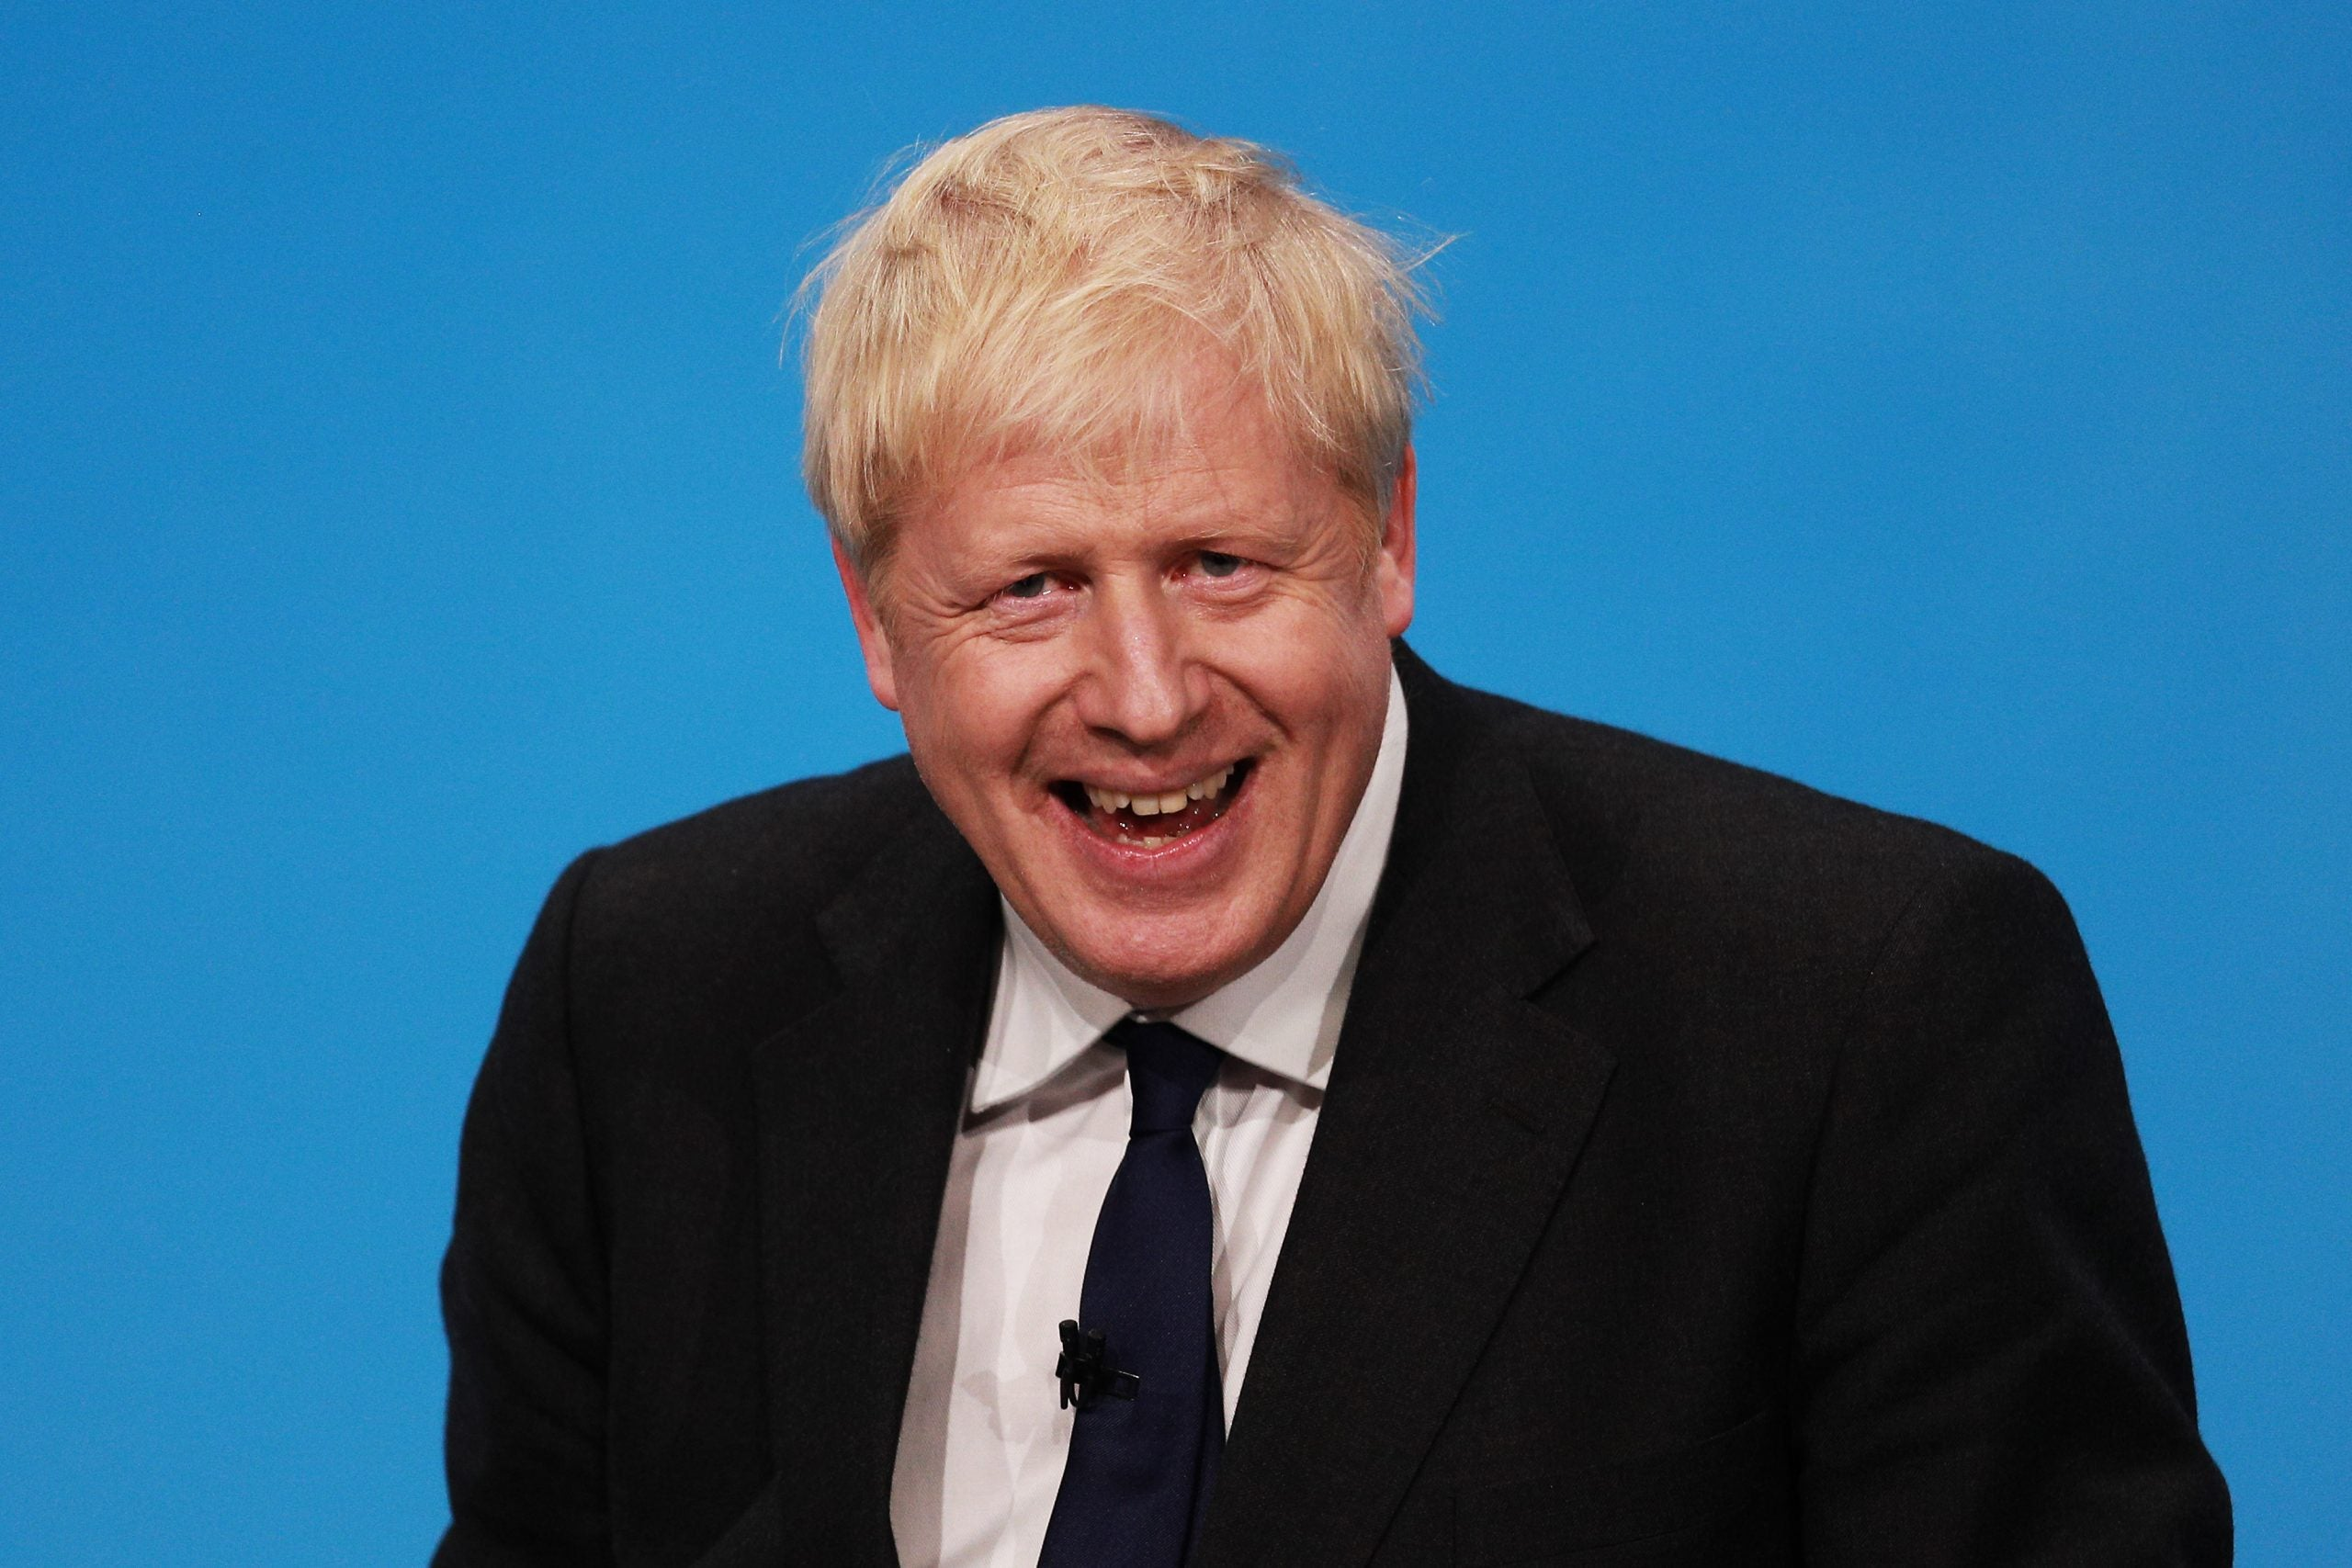 Voters across the world have rallied around their leaders – and Boris Johnson has benefited